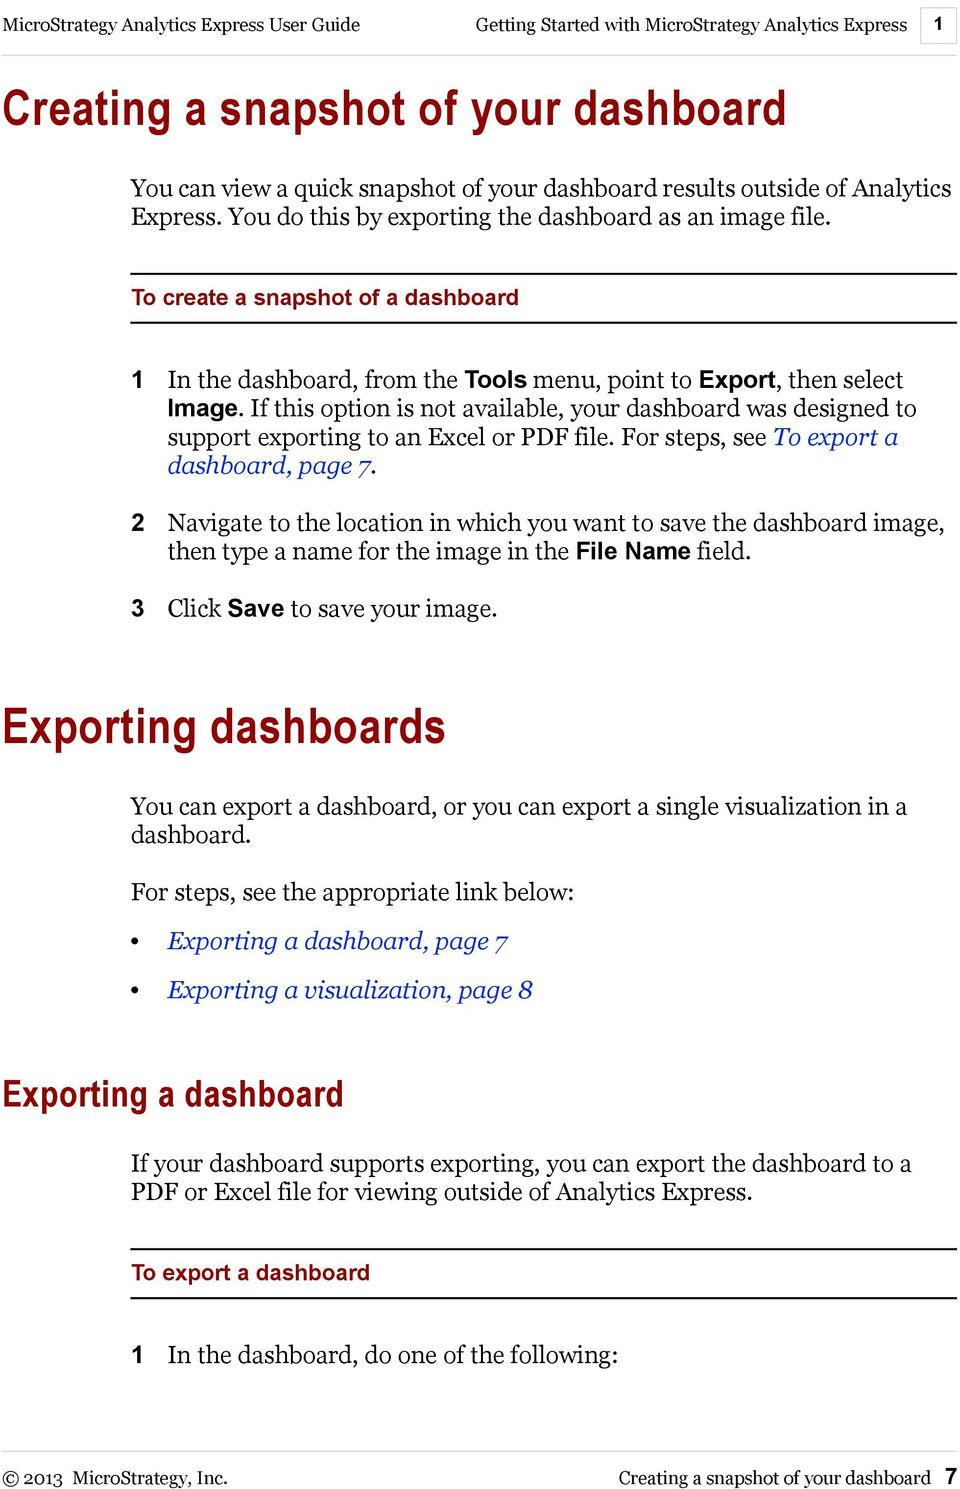 If this option is not available, your dashboard was designed to support exporting to an Excel or PDF file. For steps, see To export a dashboard, page 7.